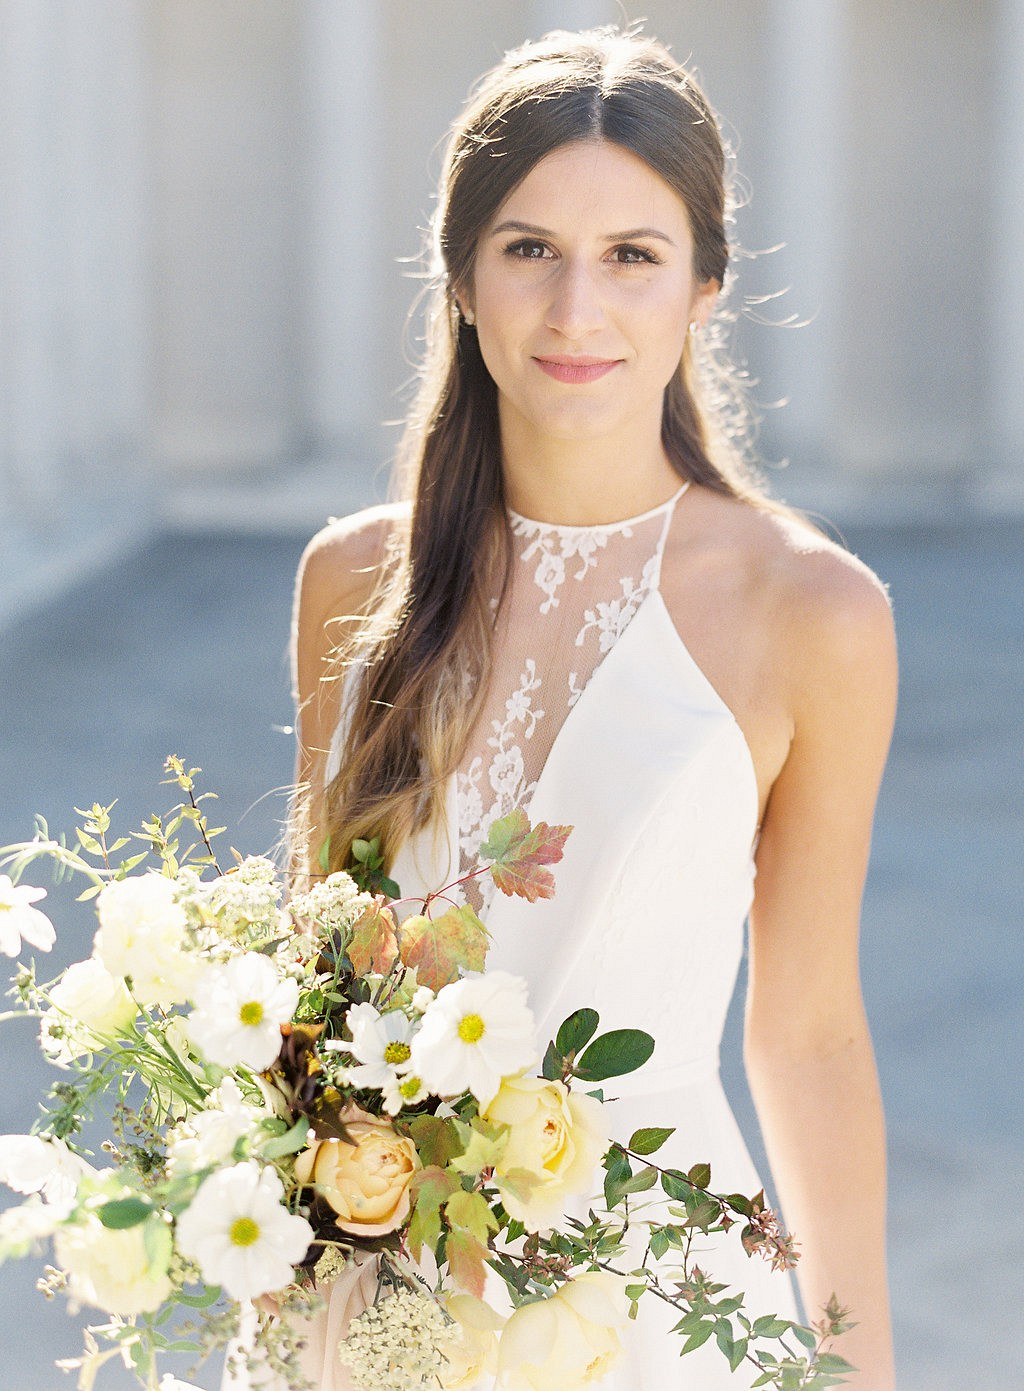 High Neck Wedding Dress Spring Bridal Look